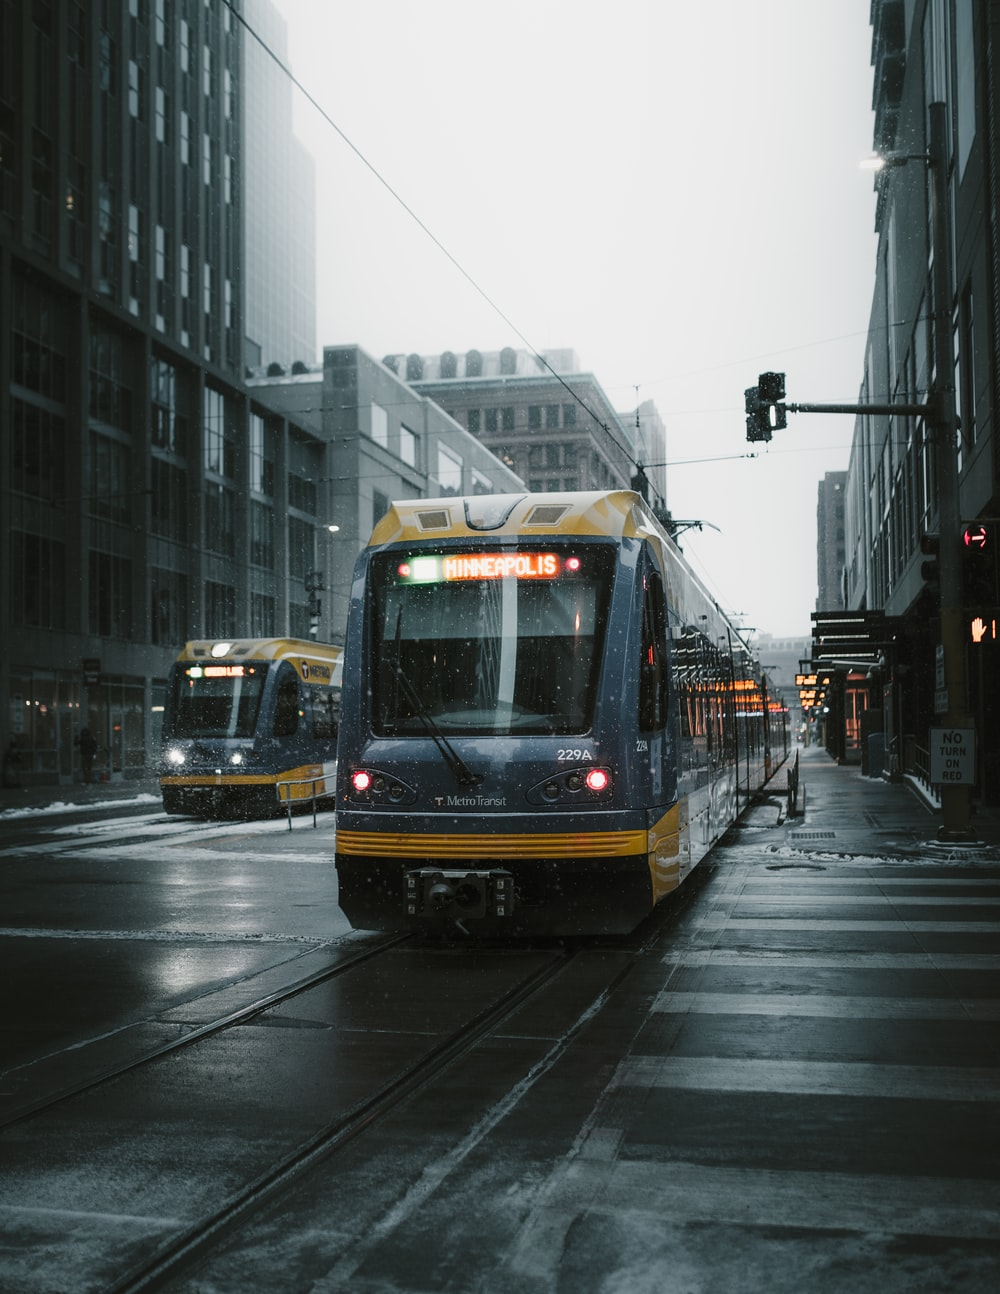 yellow and gray bus on street during cloudy daytime